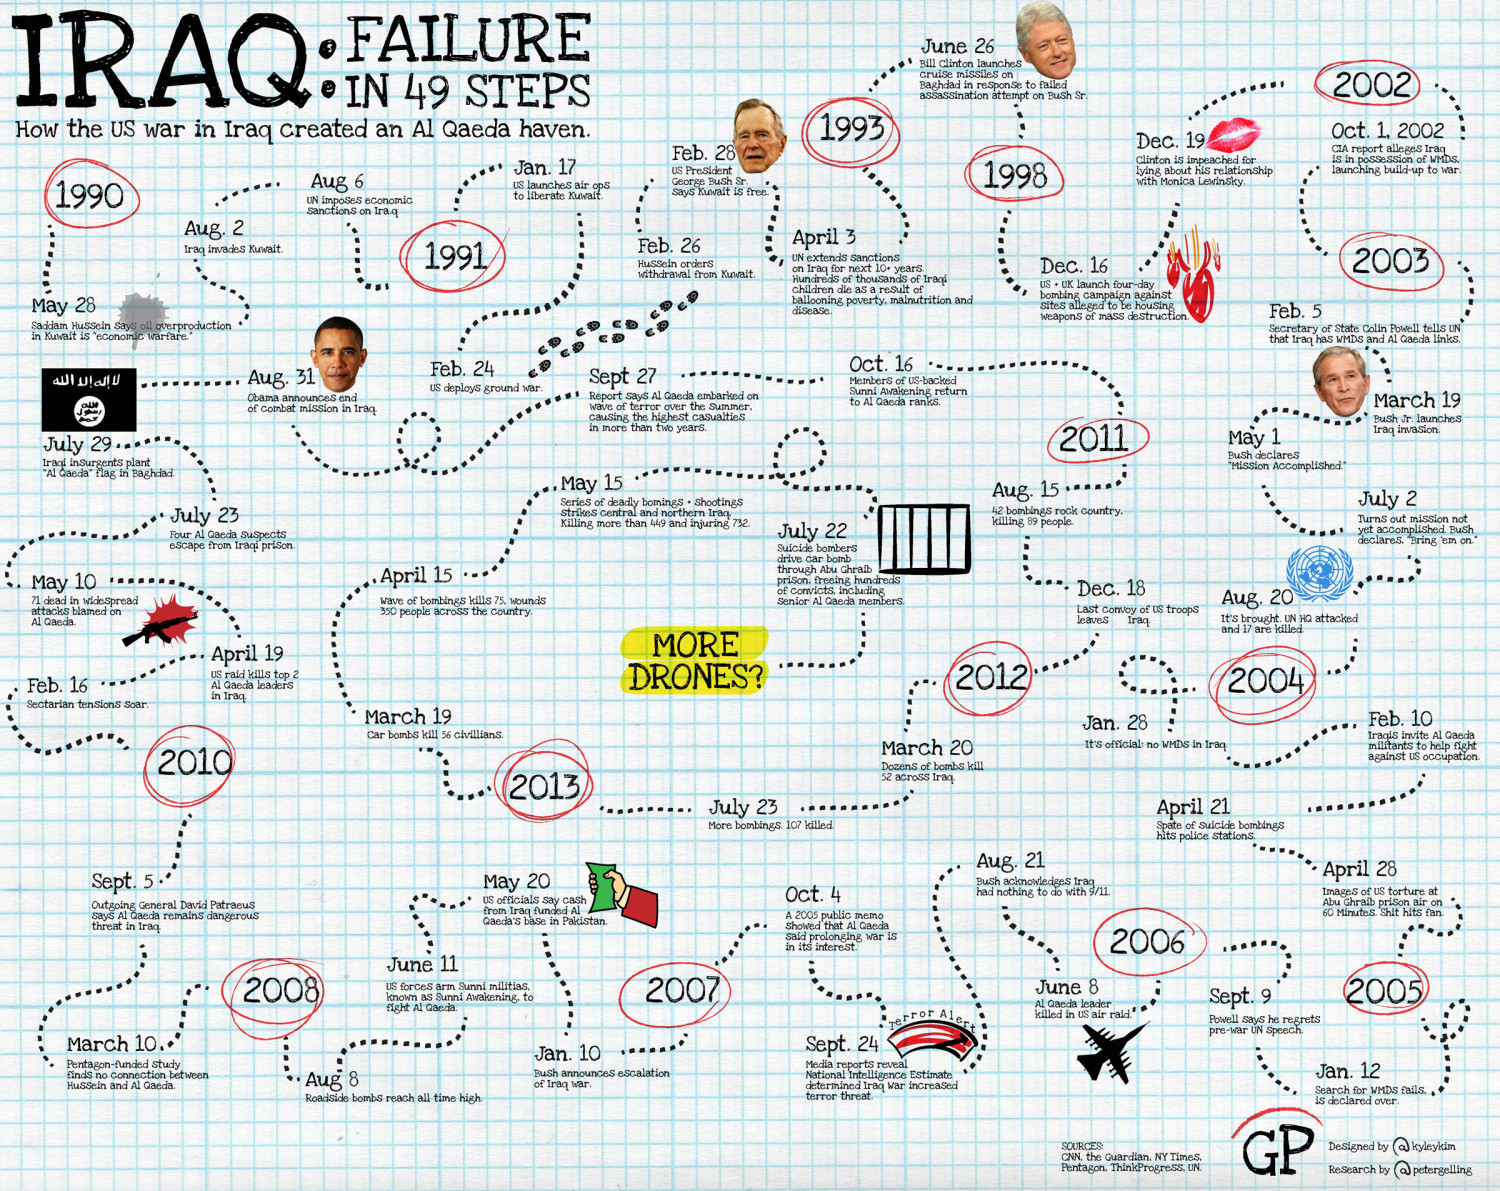 Iraq: Failure in 49 steps Infographic